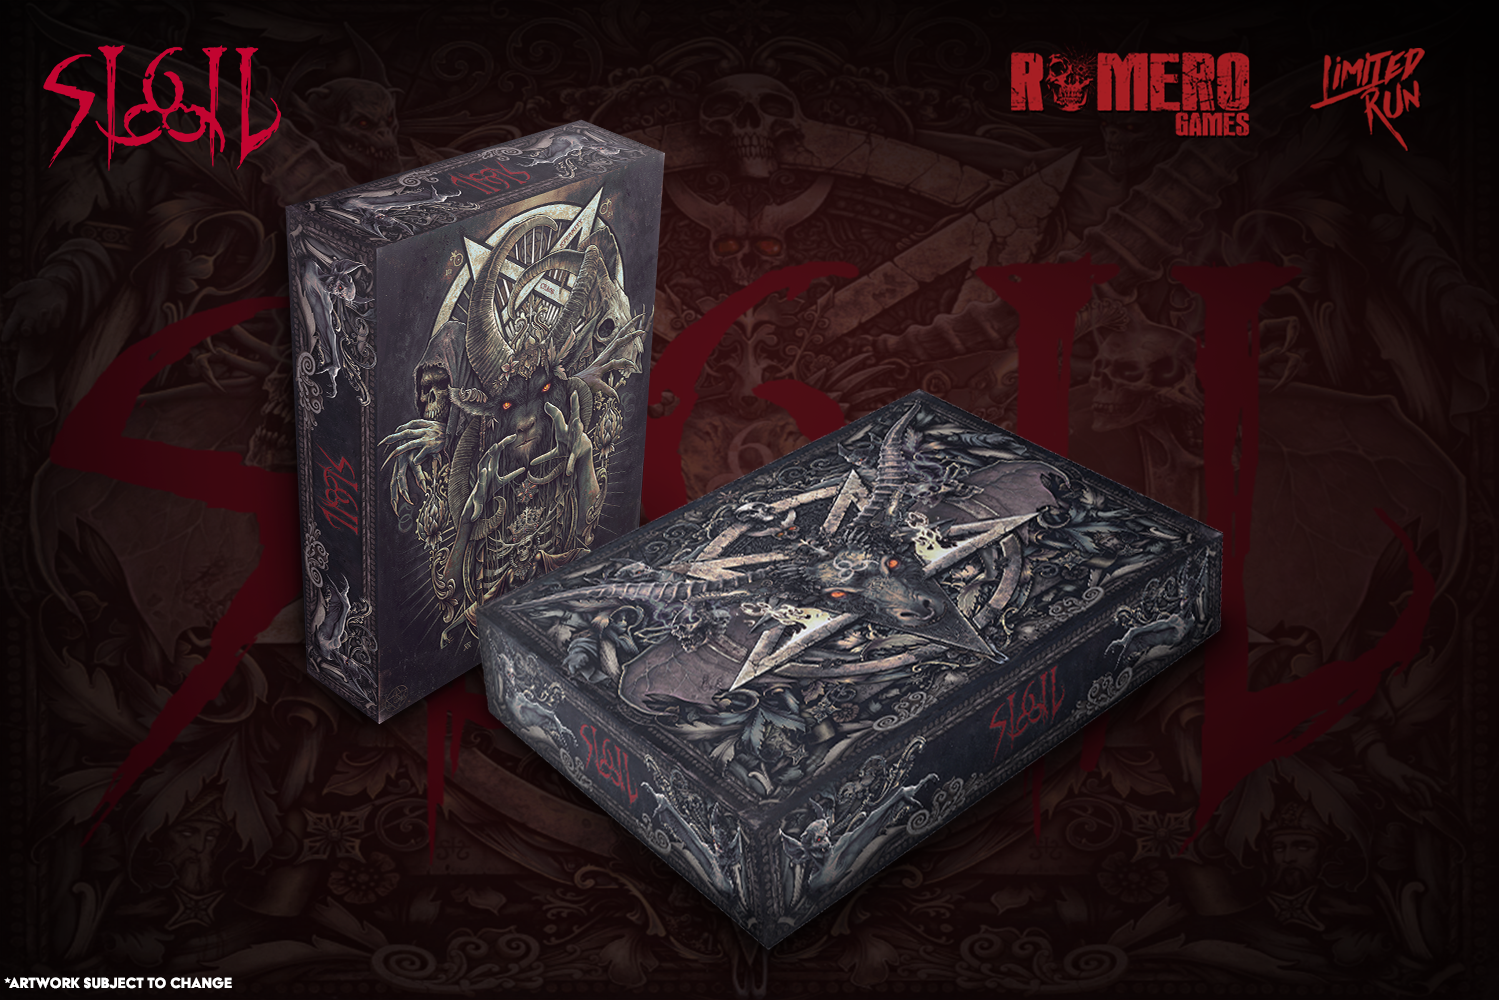 Sigil delayed Beast Box bundle